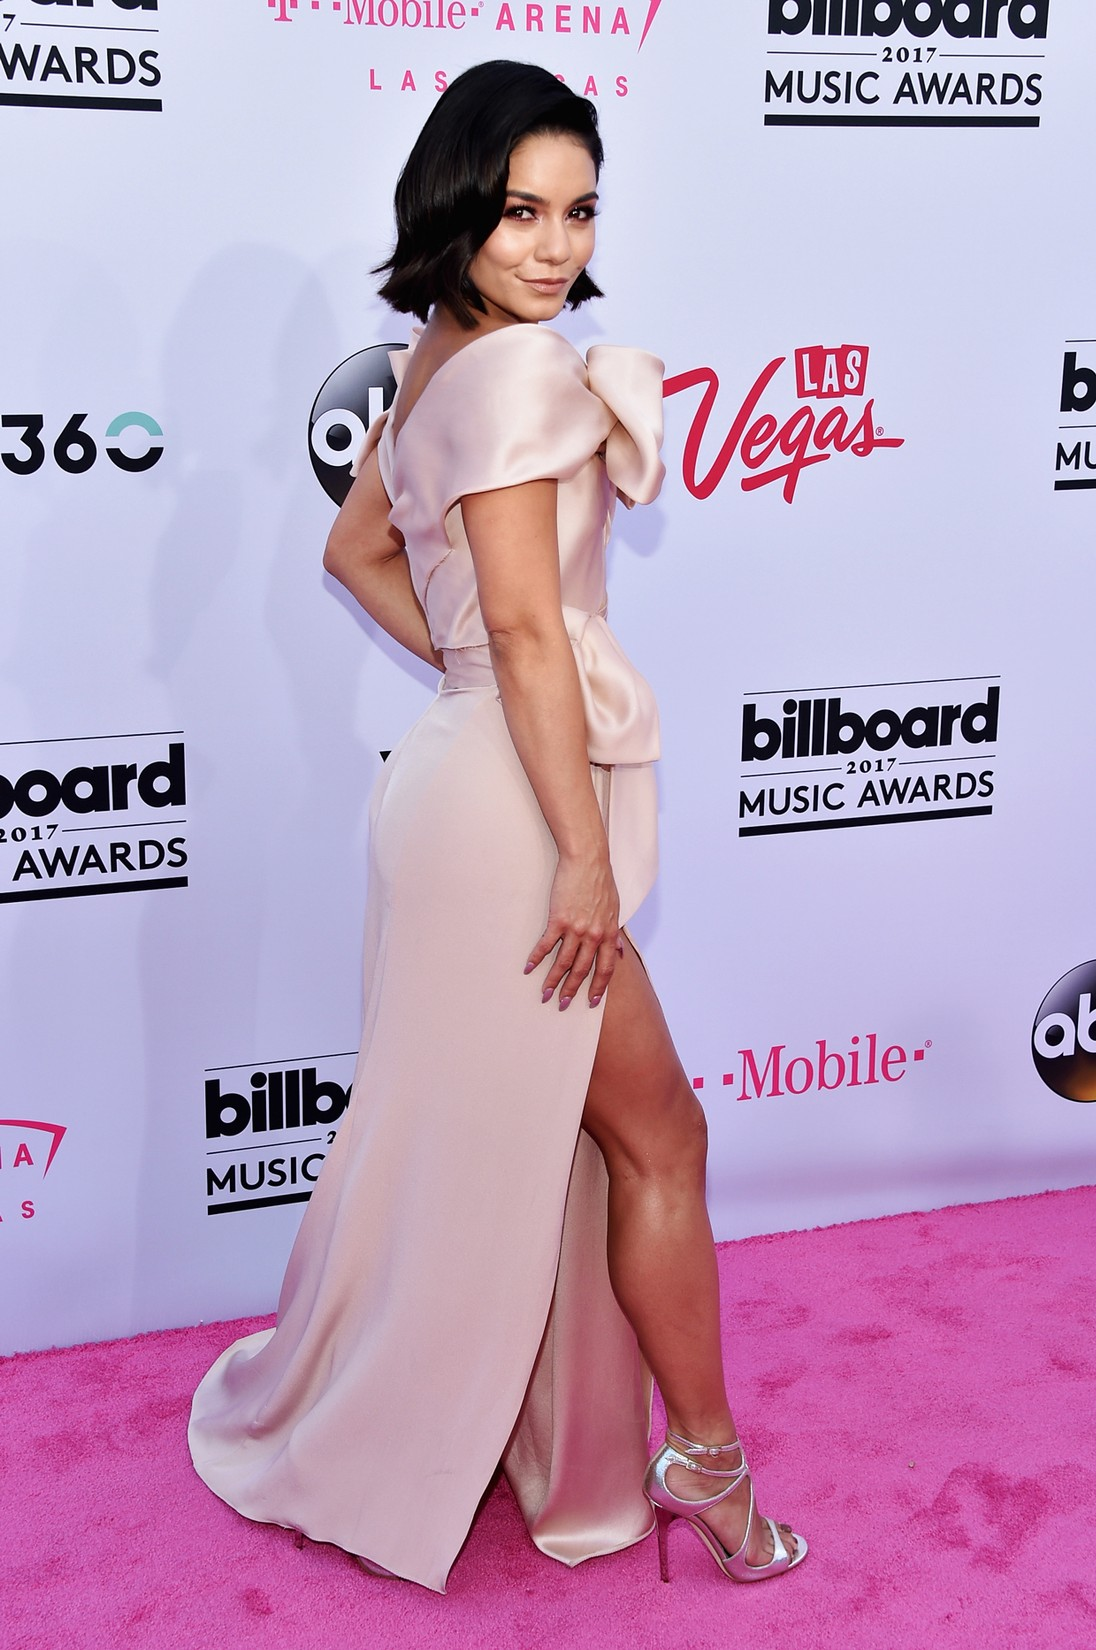 Vanessa Hudgens attends the 2017 Billboard Music Awards at T-Mobile Arena on May 21, 2017 in Las Vegas.